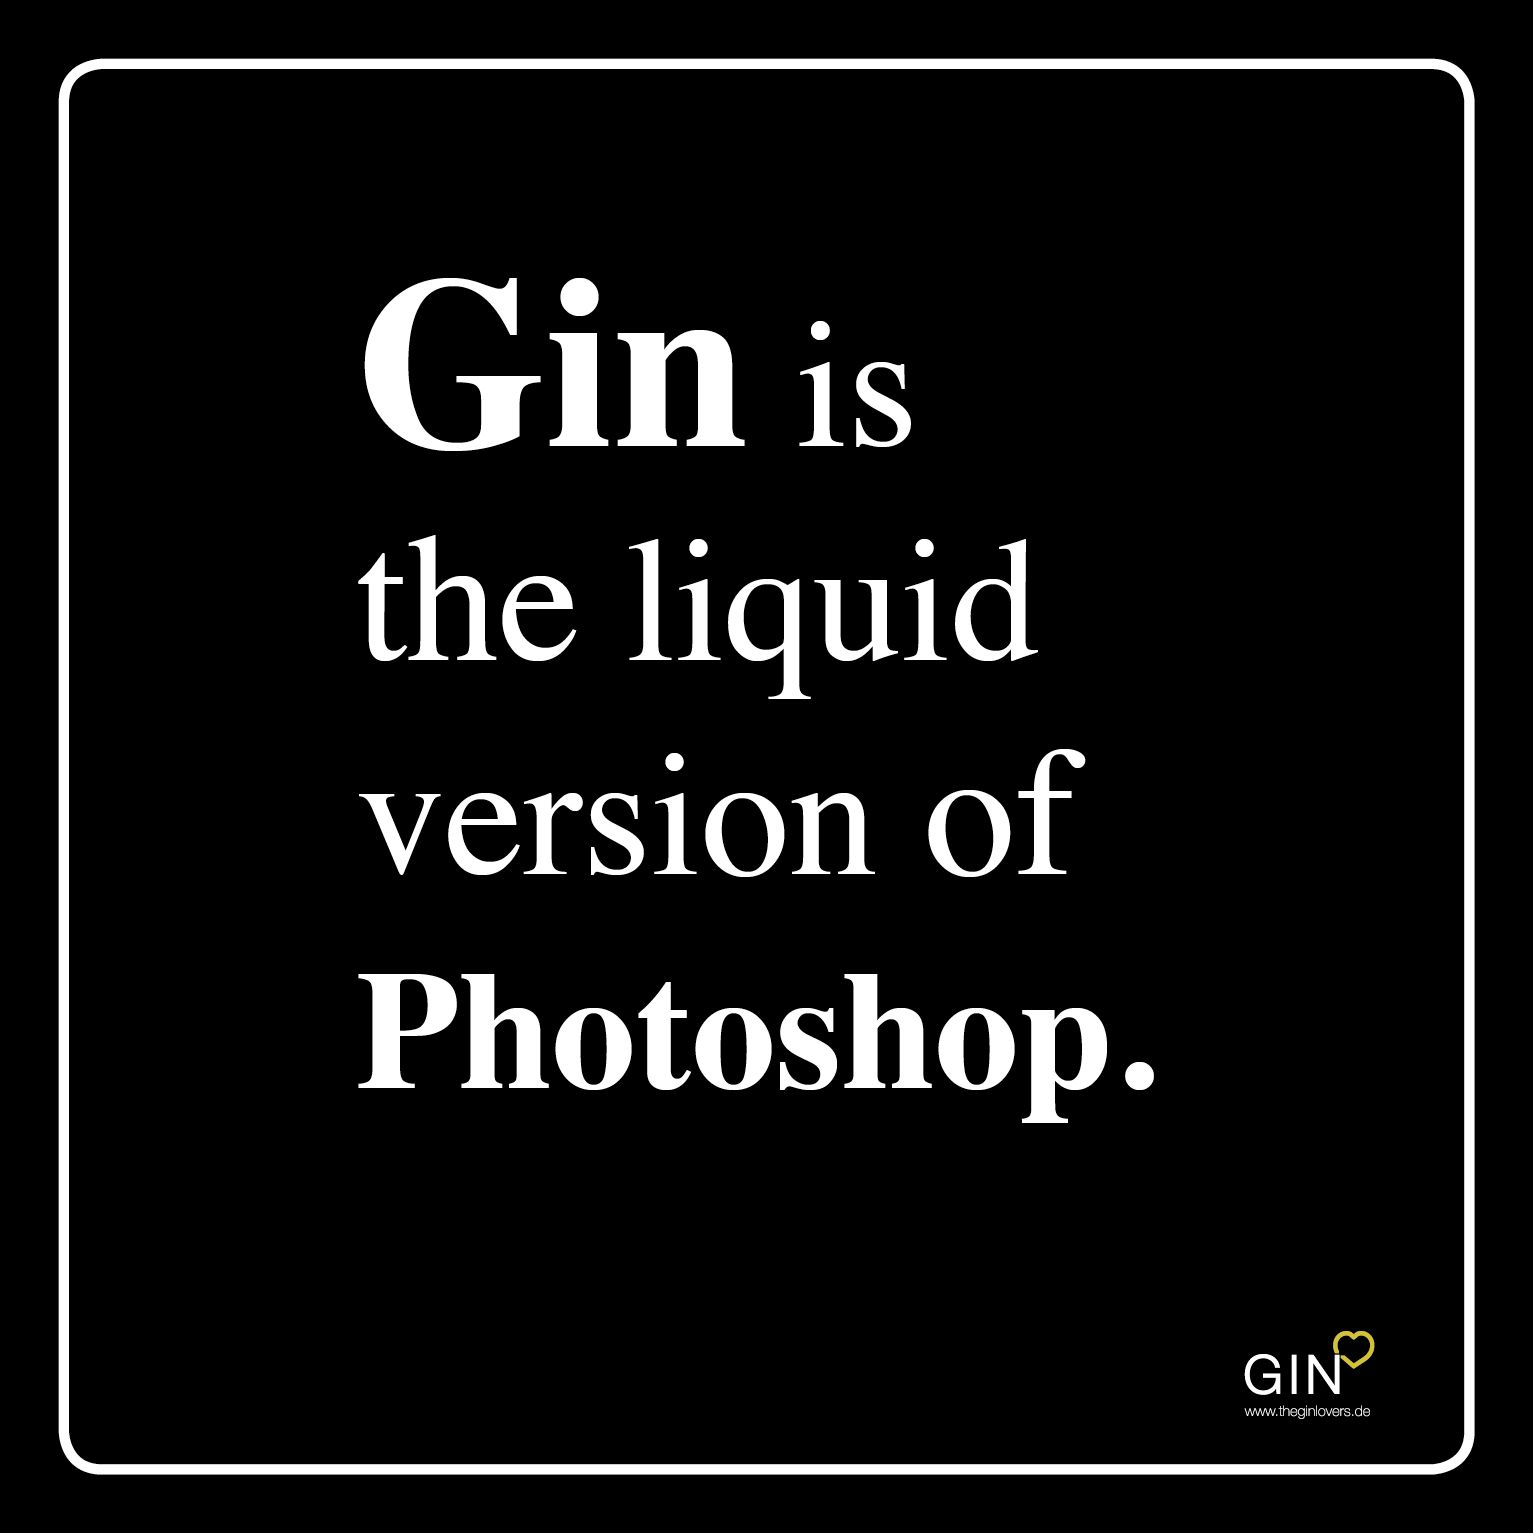 Gin is the liquid version of Photoshop. gin quotes, gin quotes, gin quotes, gin q ...